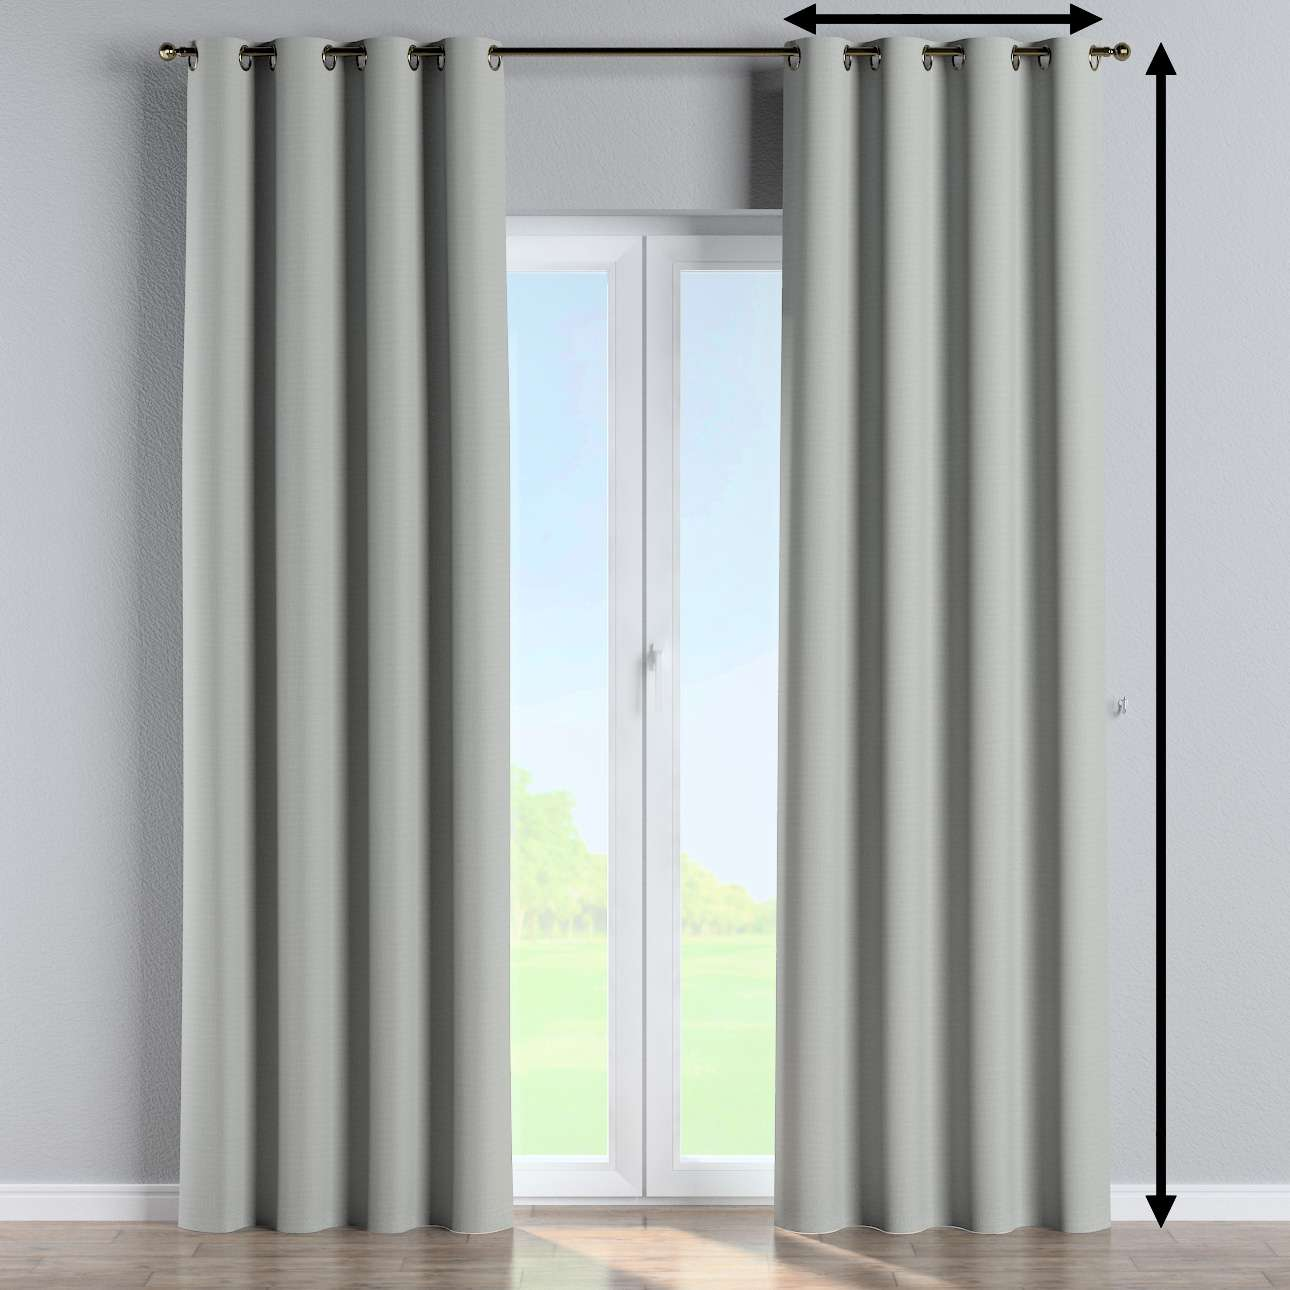 Blackout eyelet curtain in collection Blackout 280 cm, fabric: 269-13